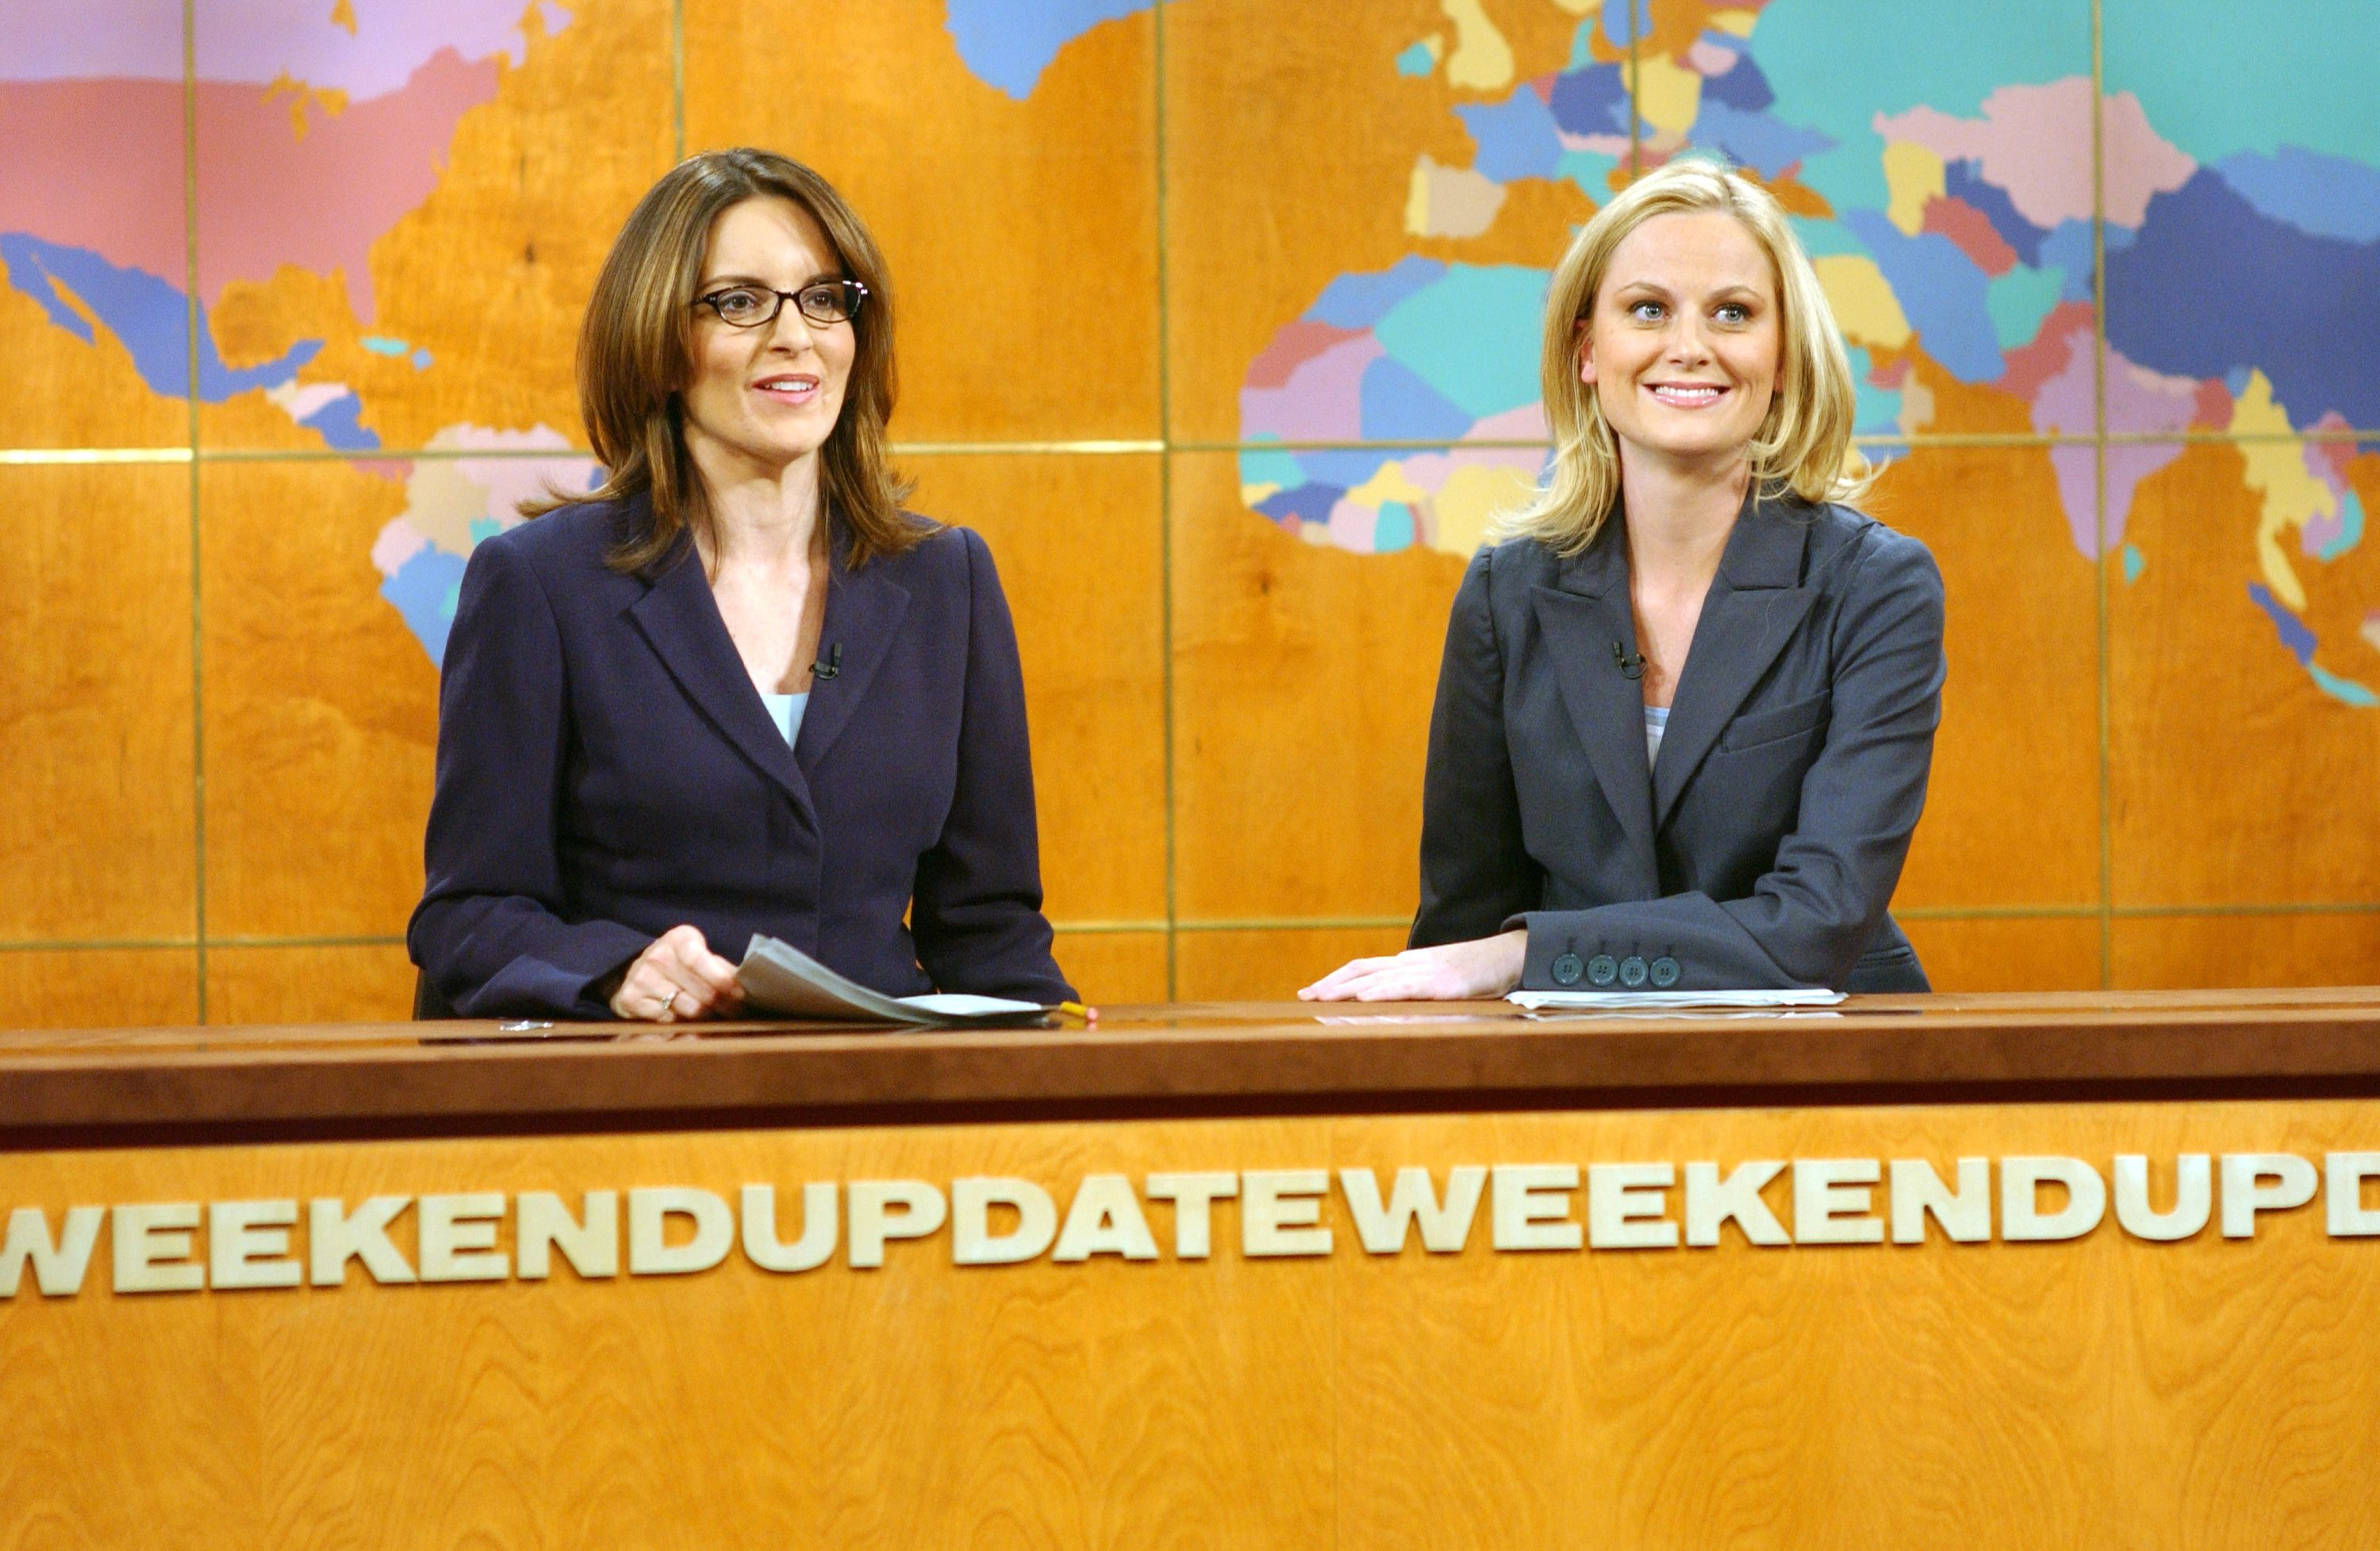 Tina Fey, Amy Poehler, Saturday Night Live